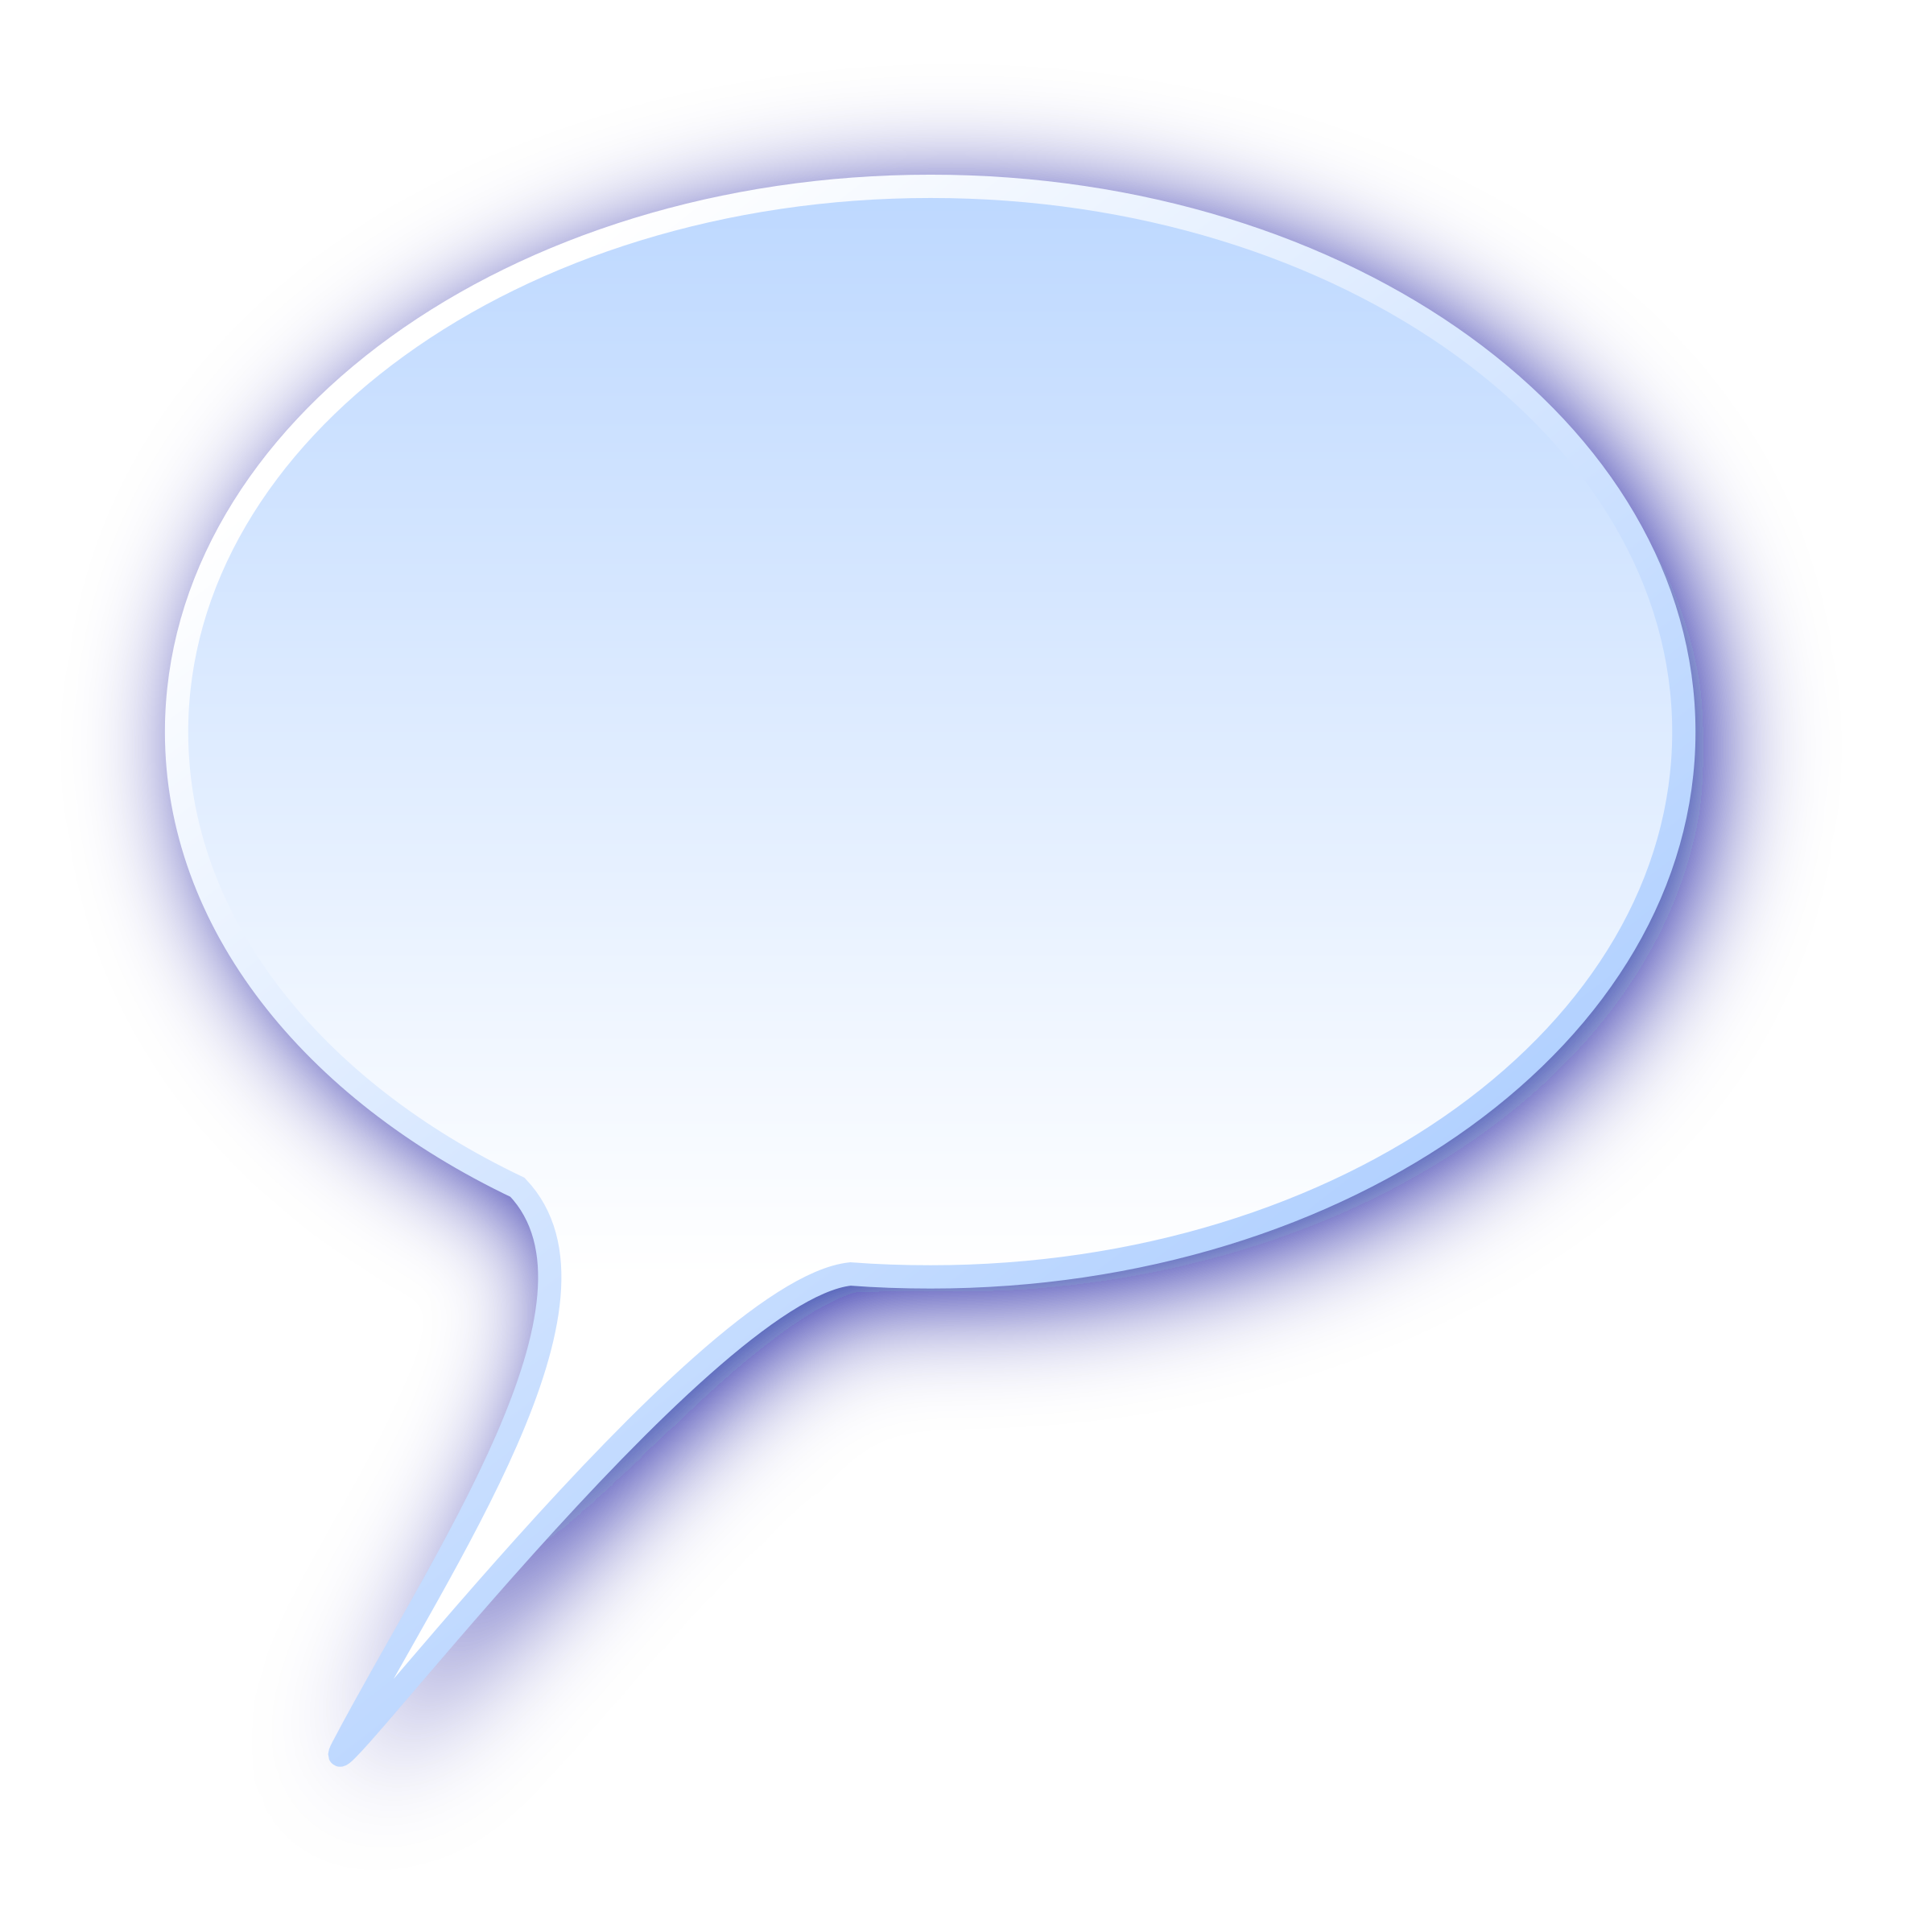 3D rounded speech bubble by demikl